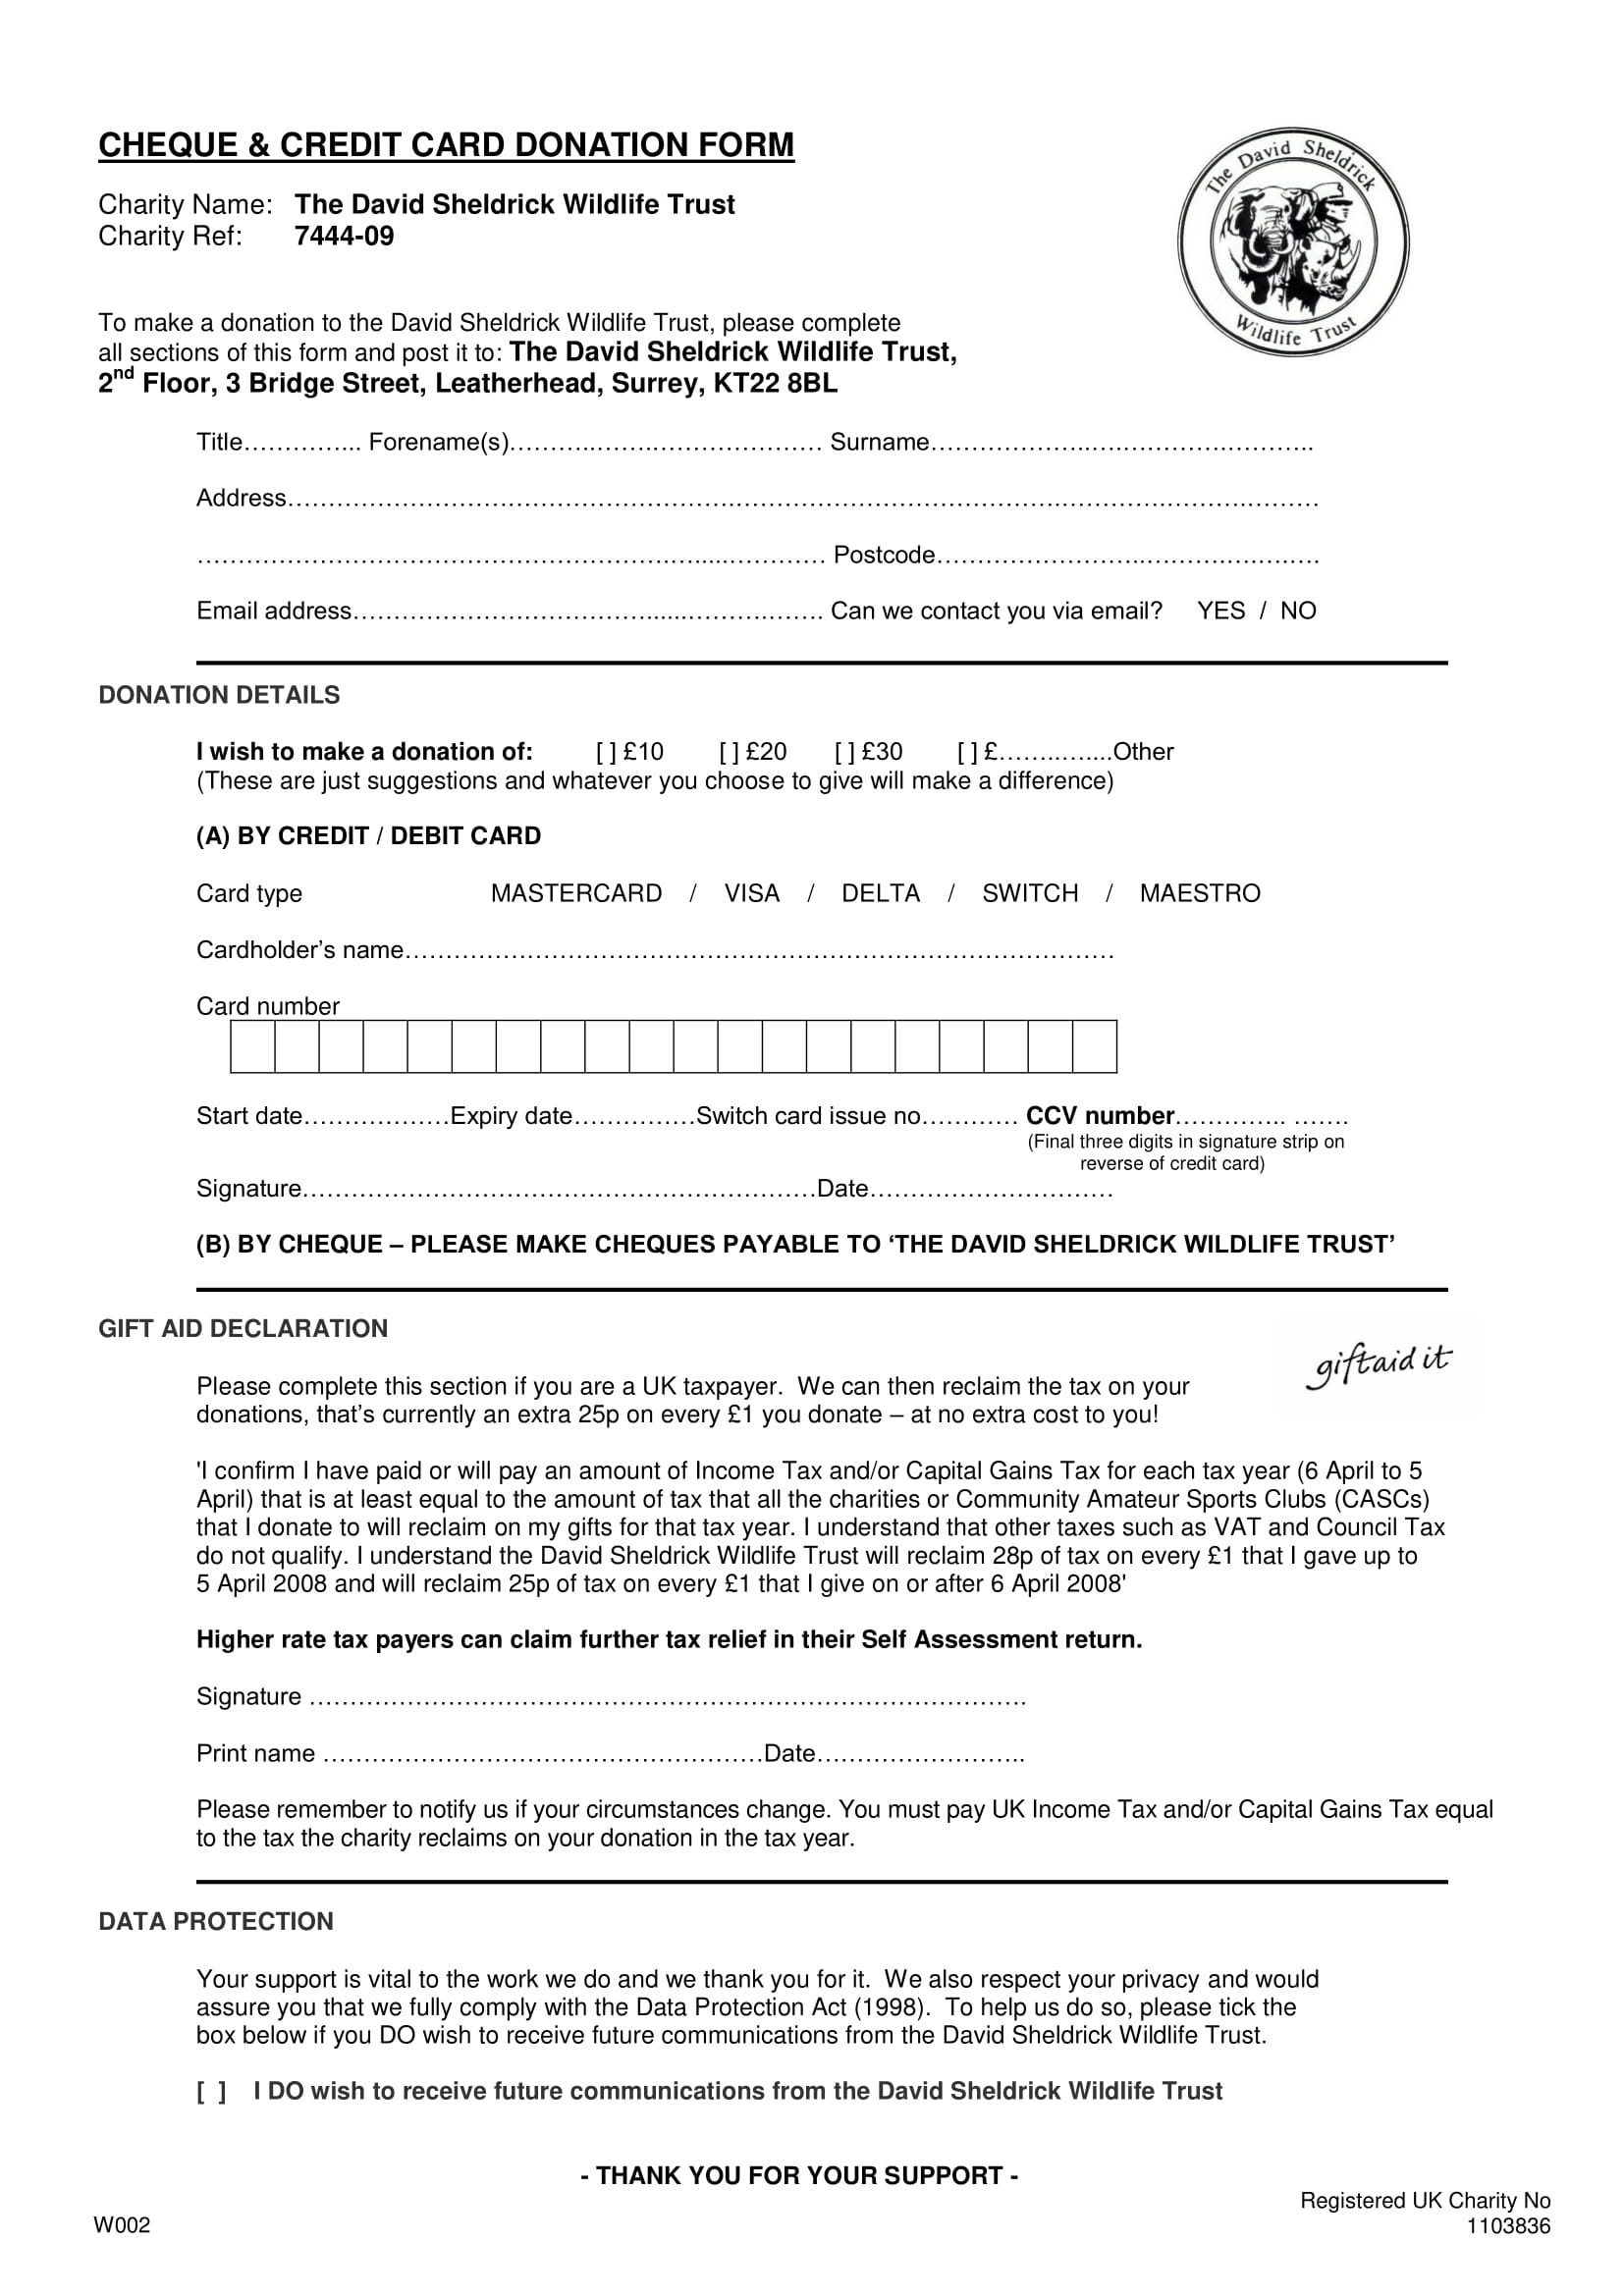 cheque and credit card donation form 1